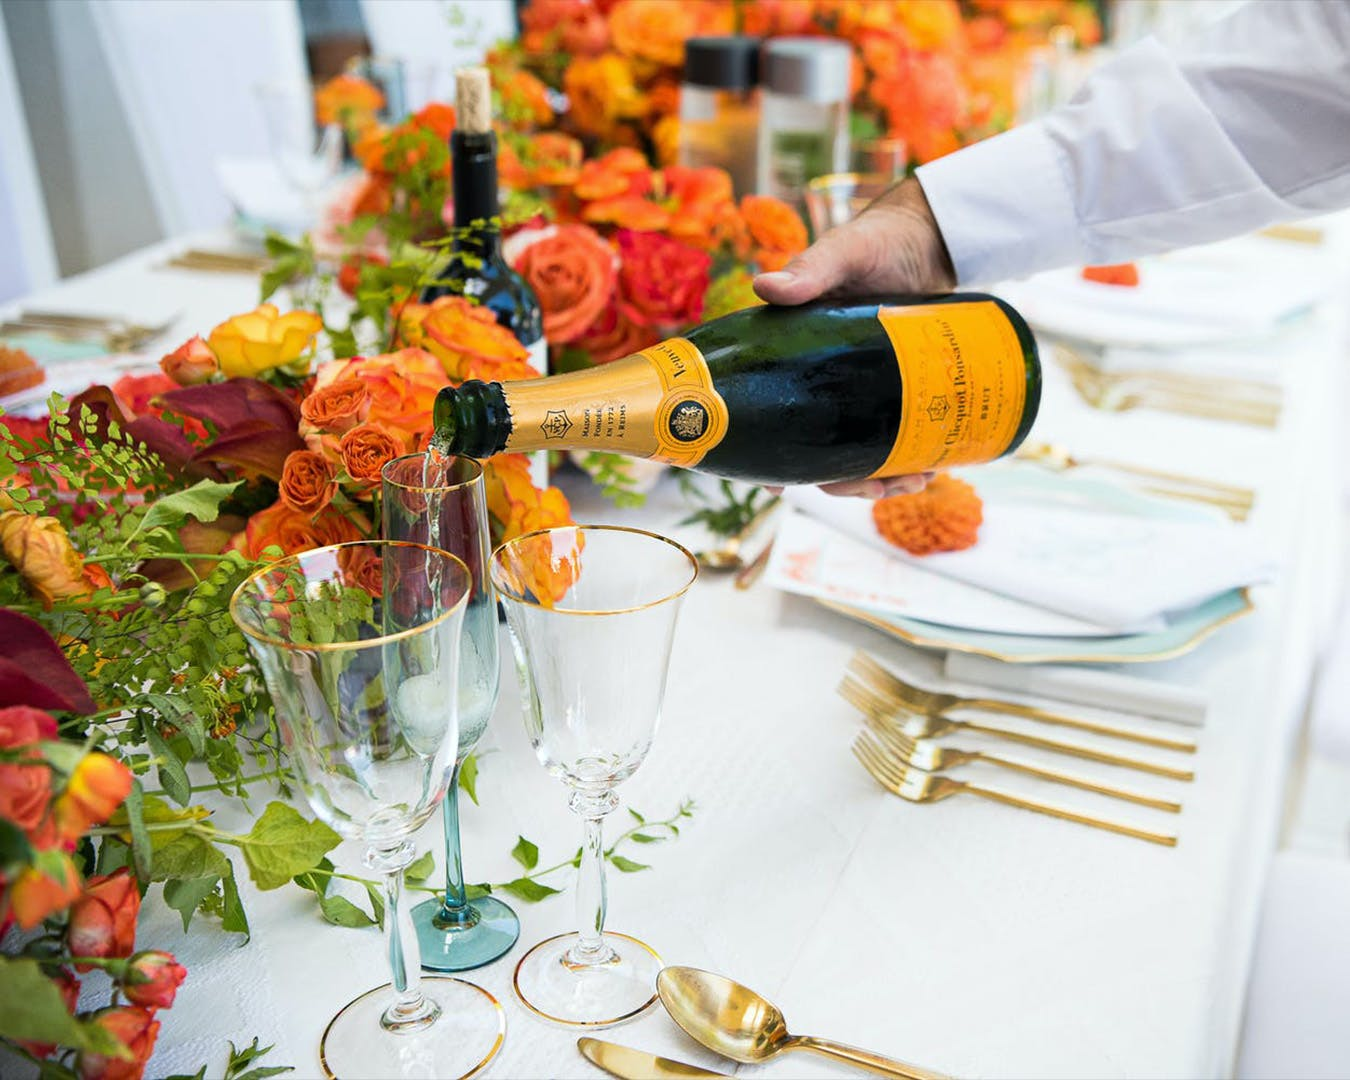 Server pours Champage at table laden with orange flowers and greenery for engagement party | PartySlate